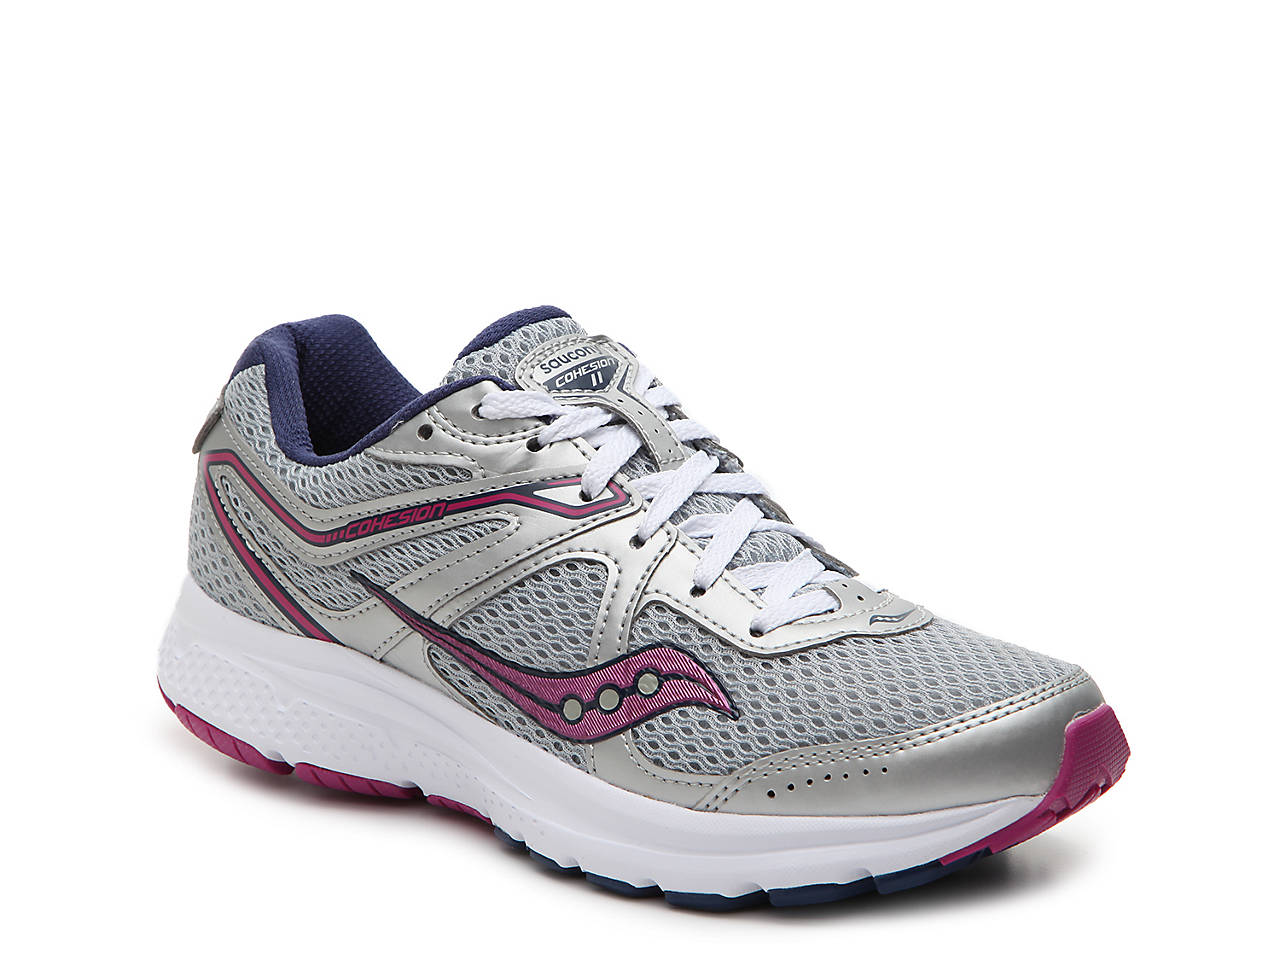 Saucony Grid Cohesion 11 Running Shoe - Women s Women s Shoes  e0f1eae74